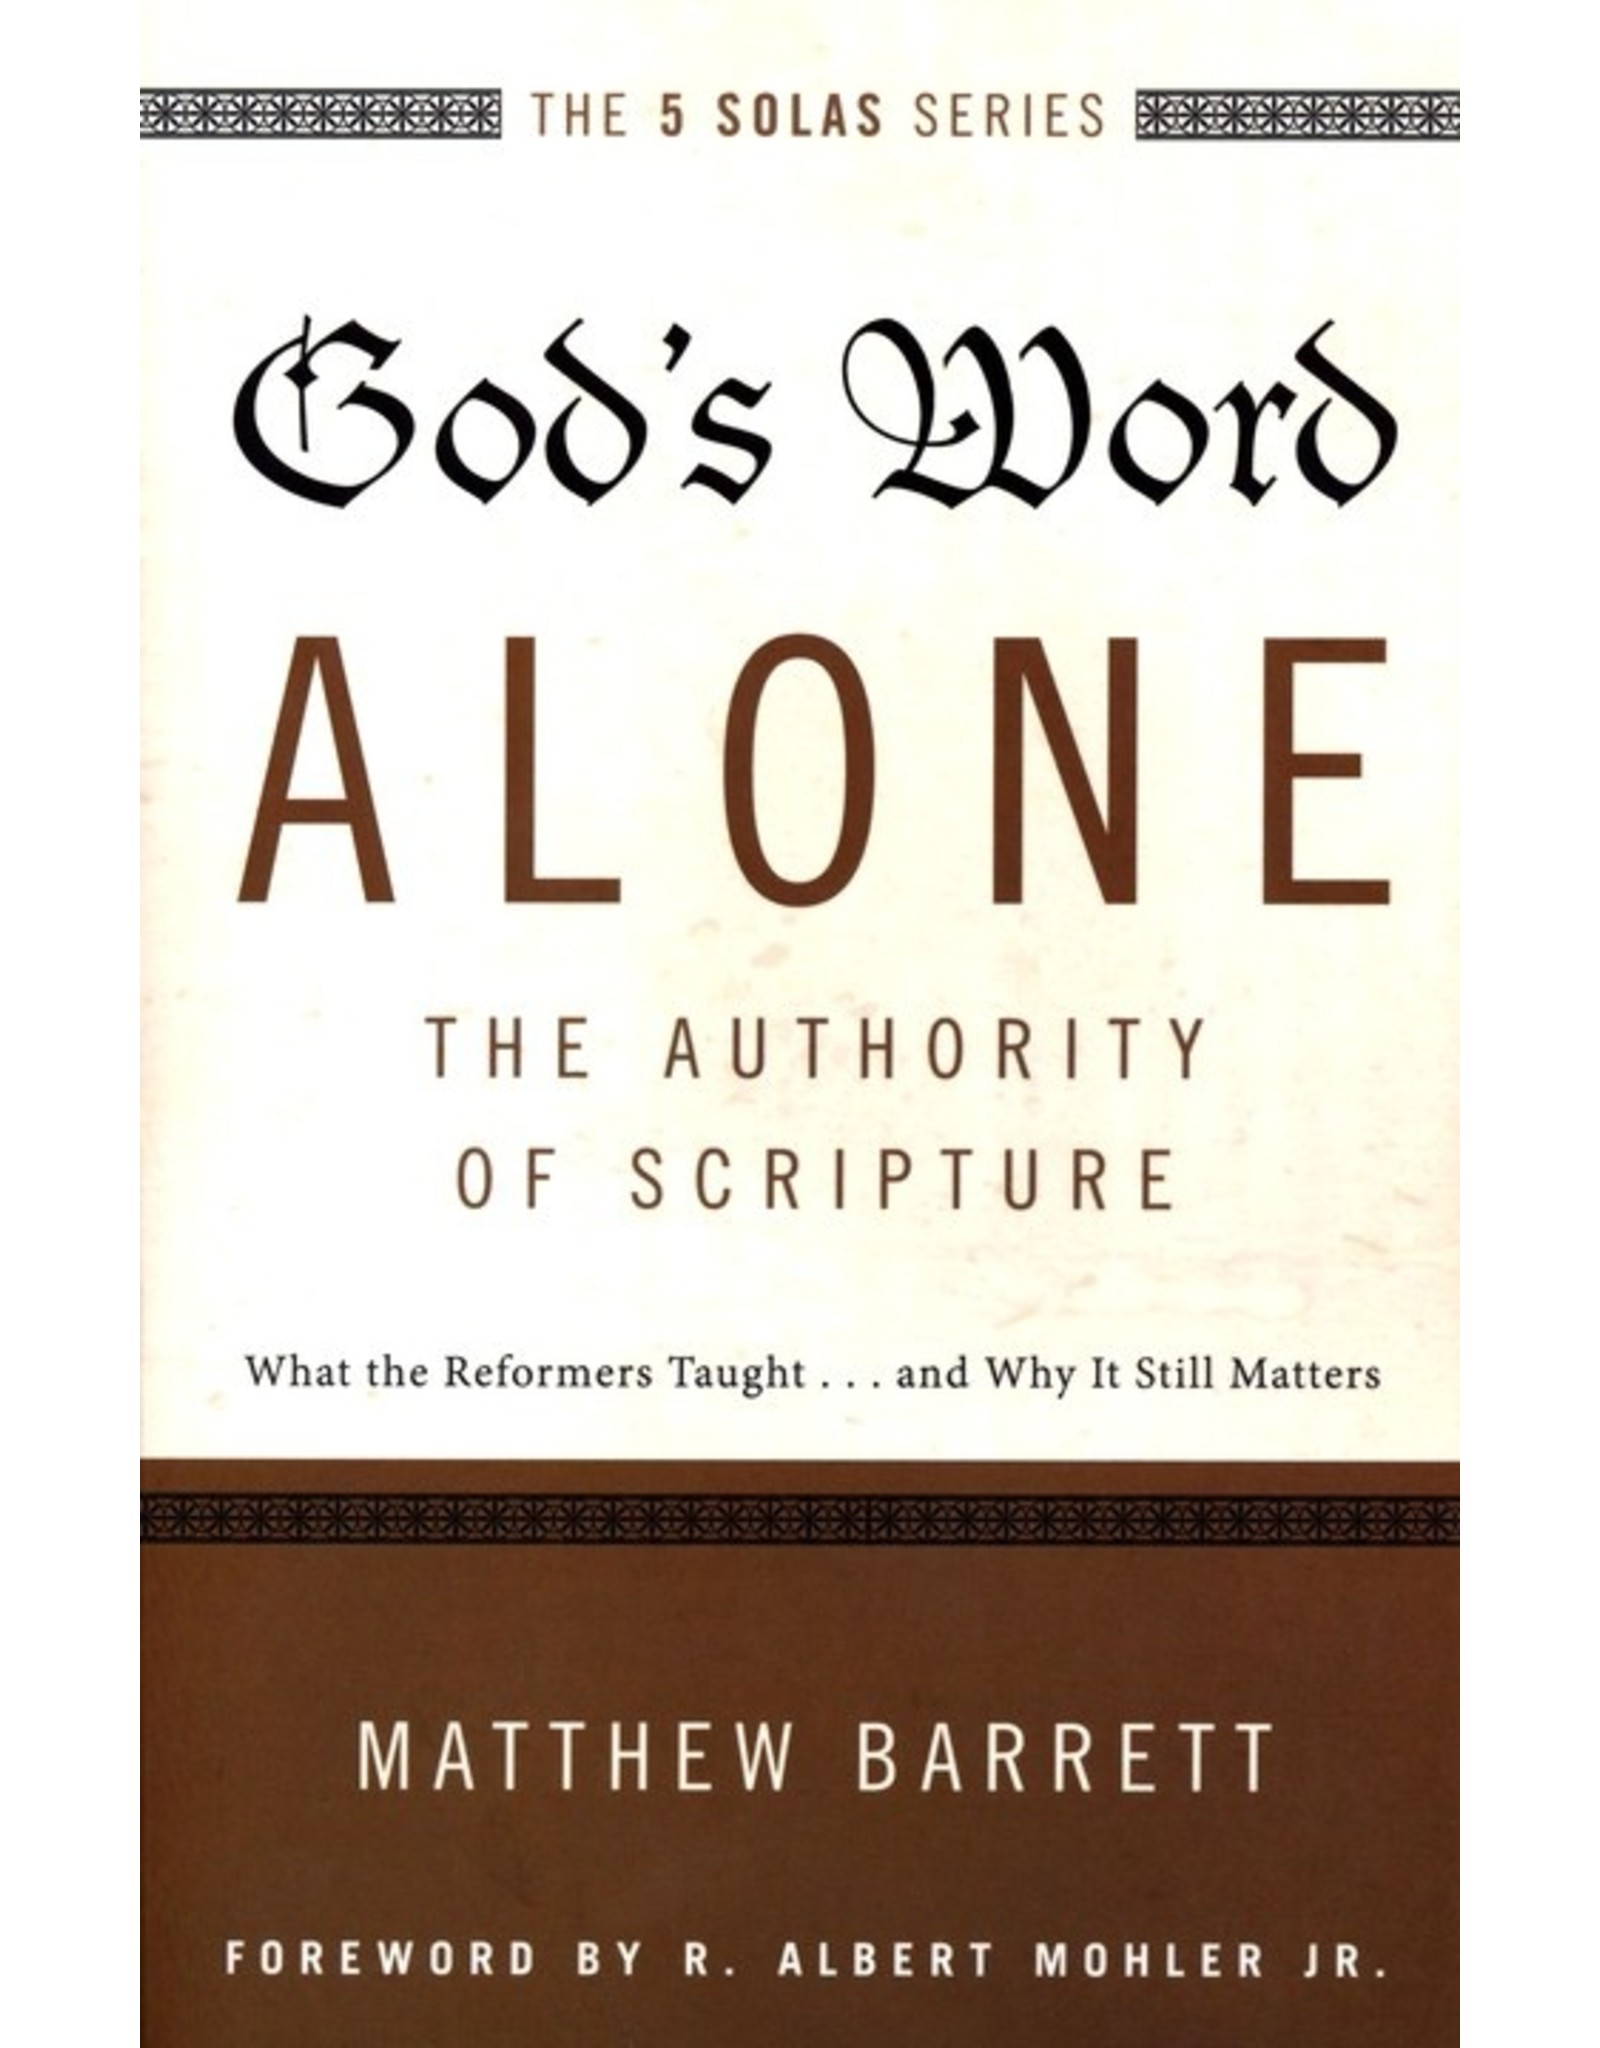 Harper Collins / Thomas Nelson / Zondervan God's Word Alone: The Authority of Scripture